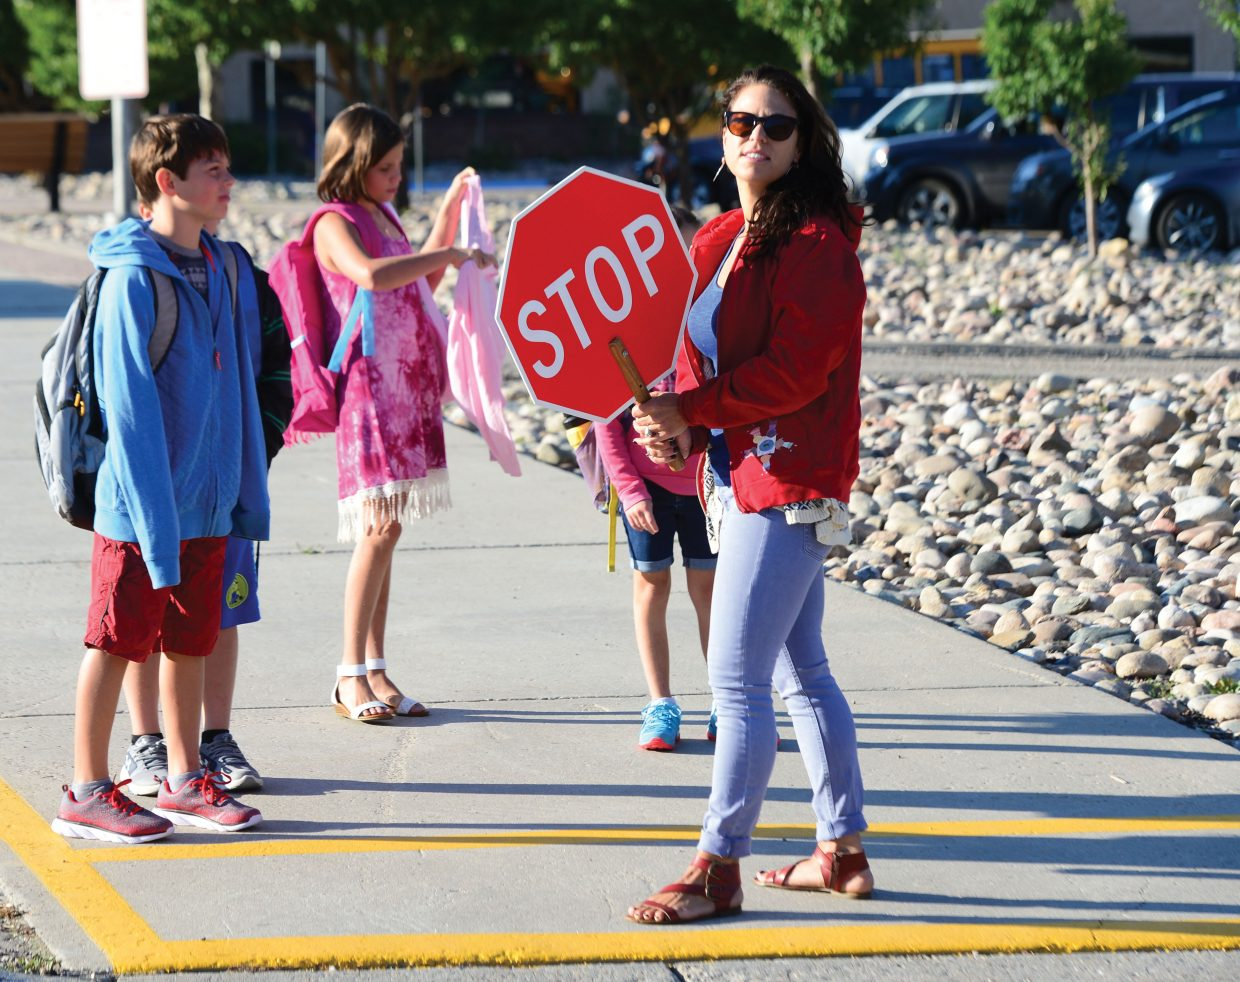 Art teacher Erin Kreis played the role of crossing guard Tuesday morning as students returned to Strawberry Park Elementary School in Steamboat Springs. The day officially marked the end of the summer break as students returned for the start of a 2017-18 school year.